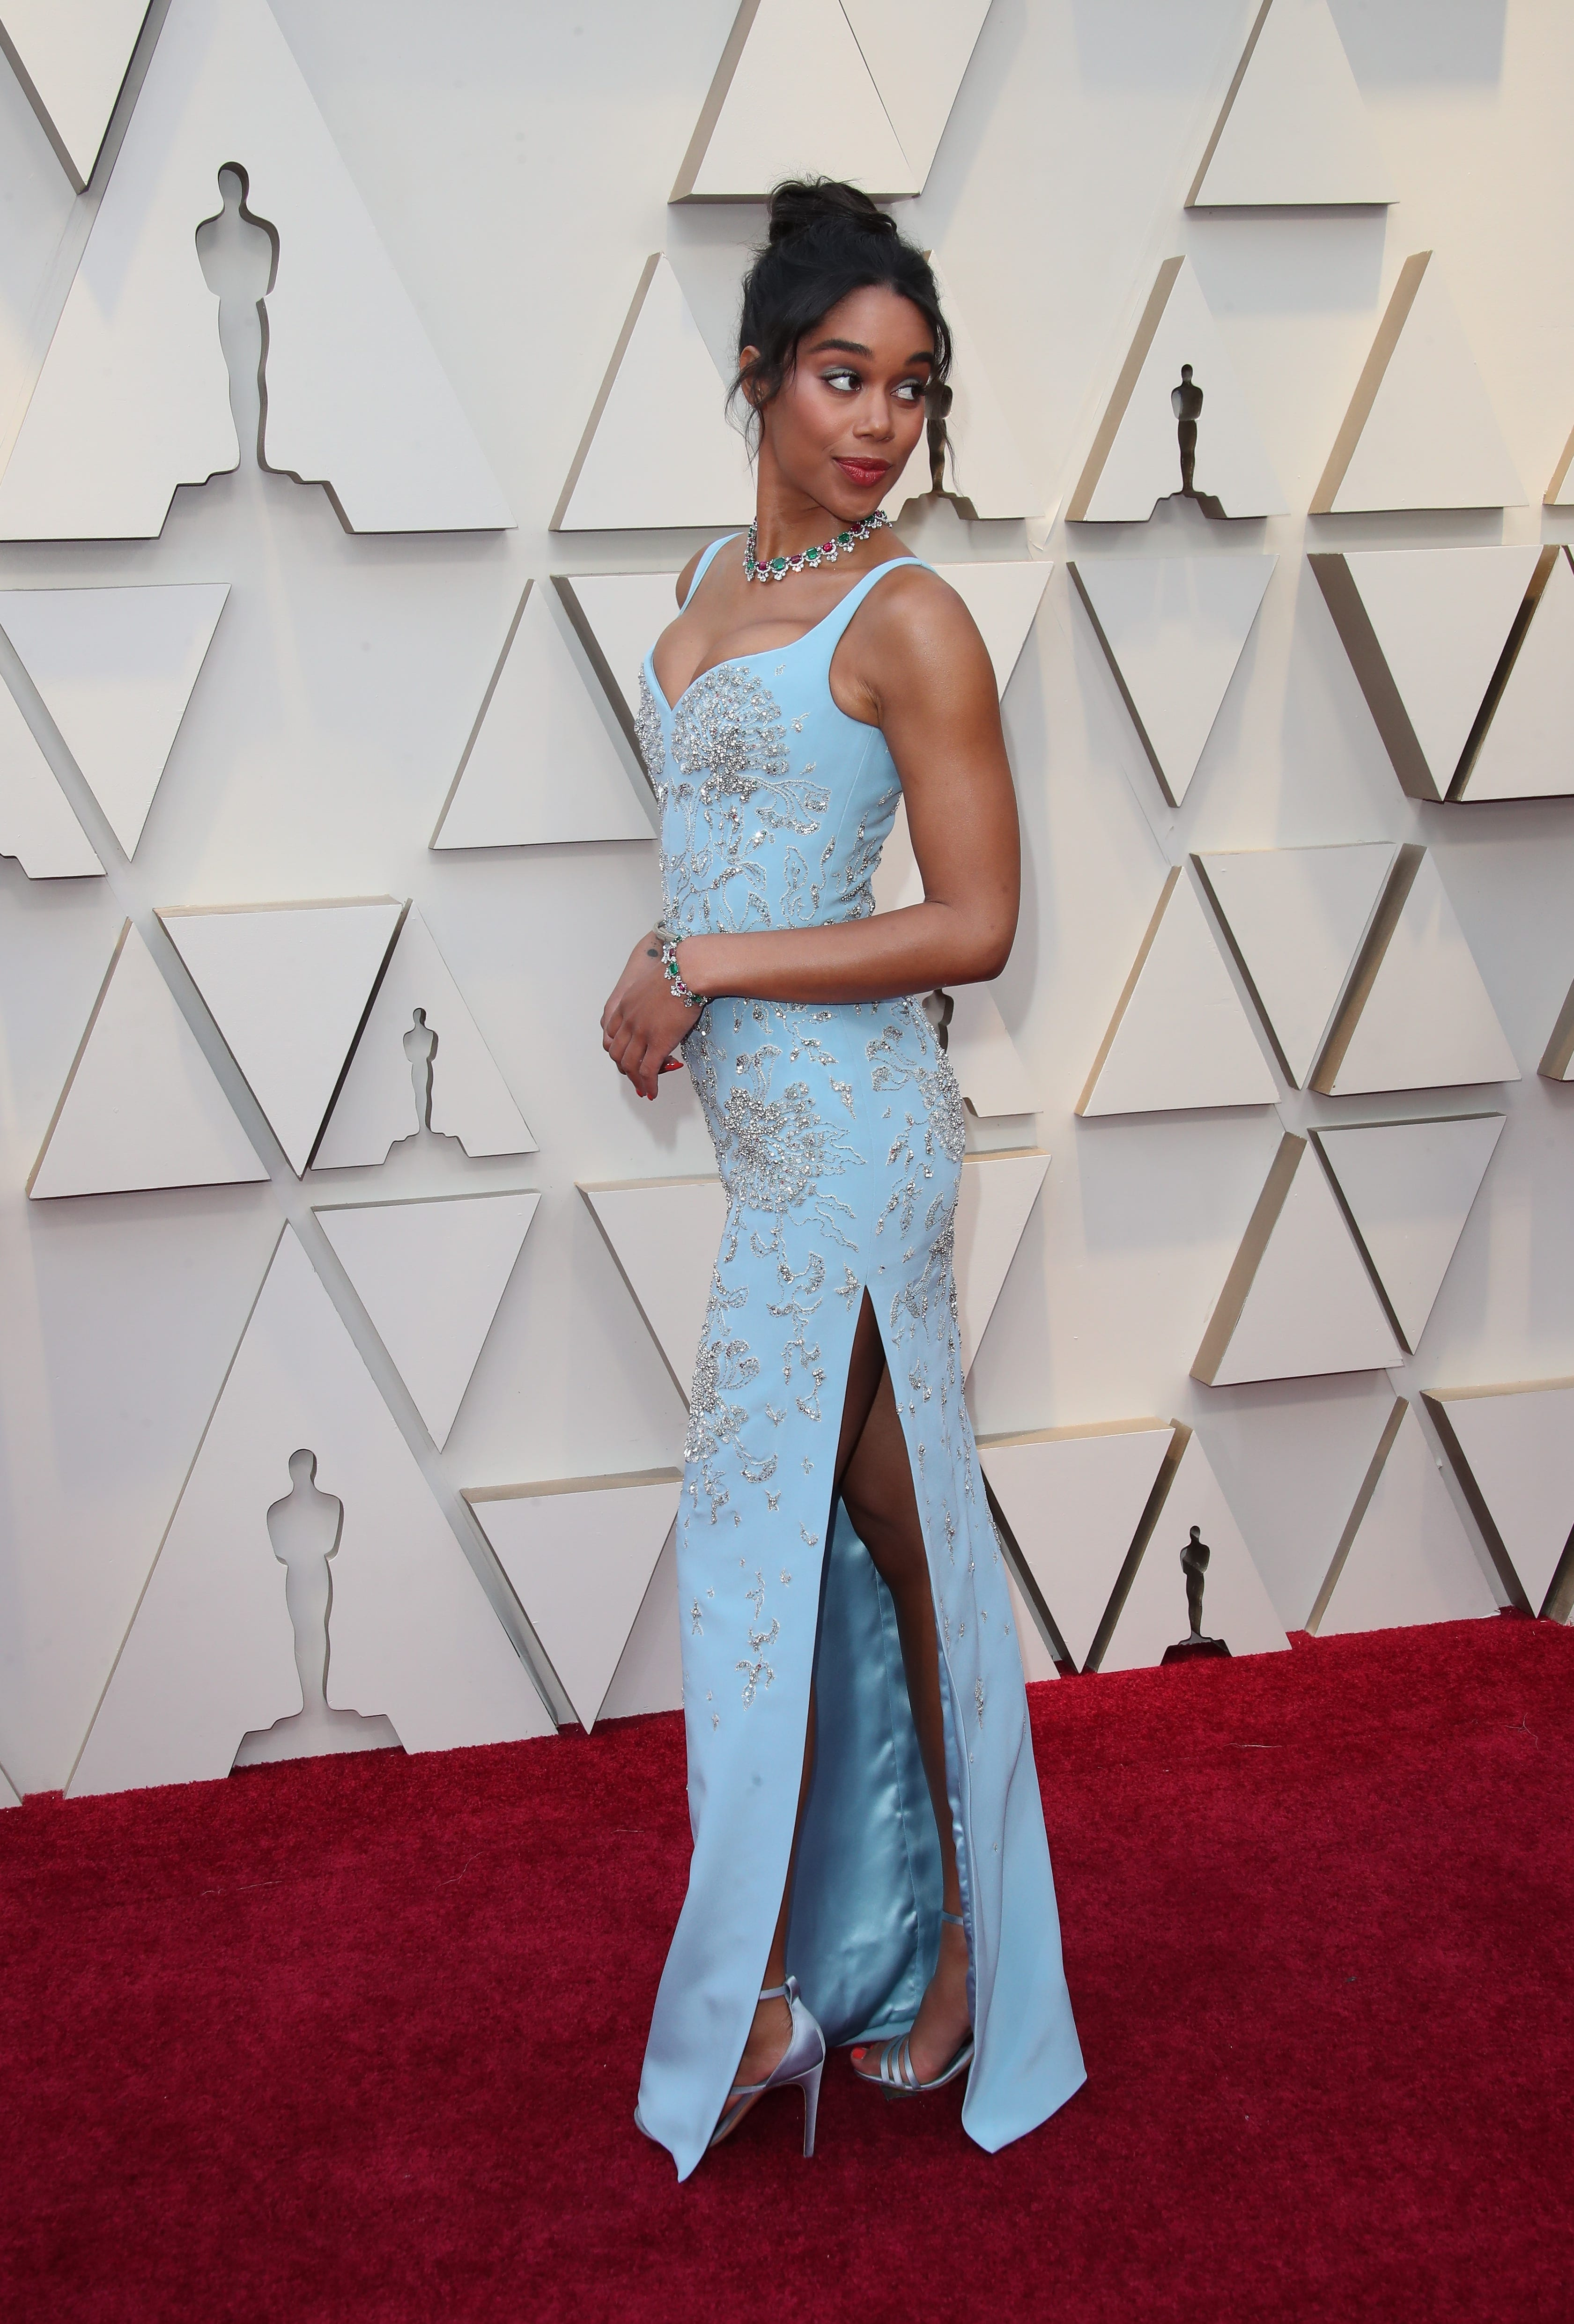 February 24, 2019; Los Angeles, CA, USA; Laura Harrier arrives at the 91st Academy Awards at the Dolby Theatre. Mandatory Credit: Dan MacMedan-USA TODAY NETWORK (Via OlyDrop)